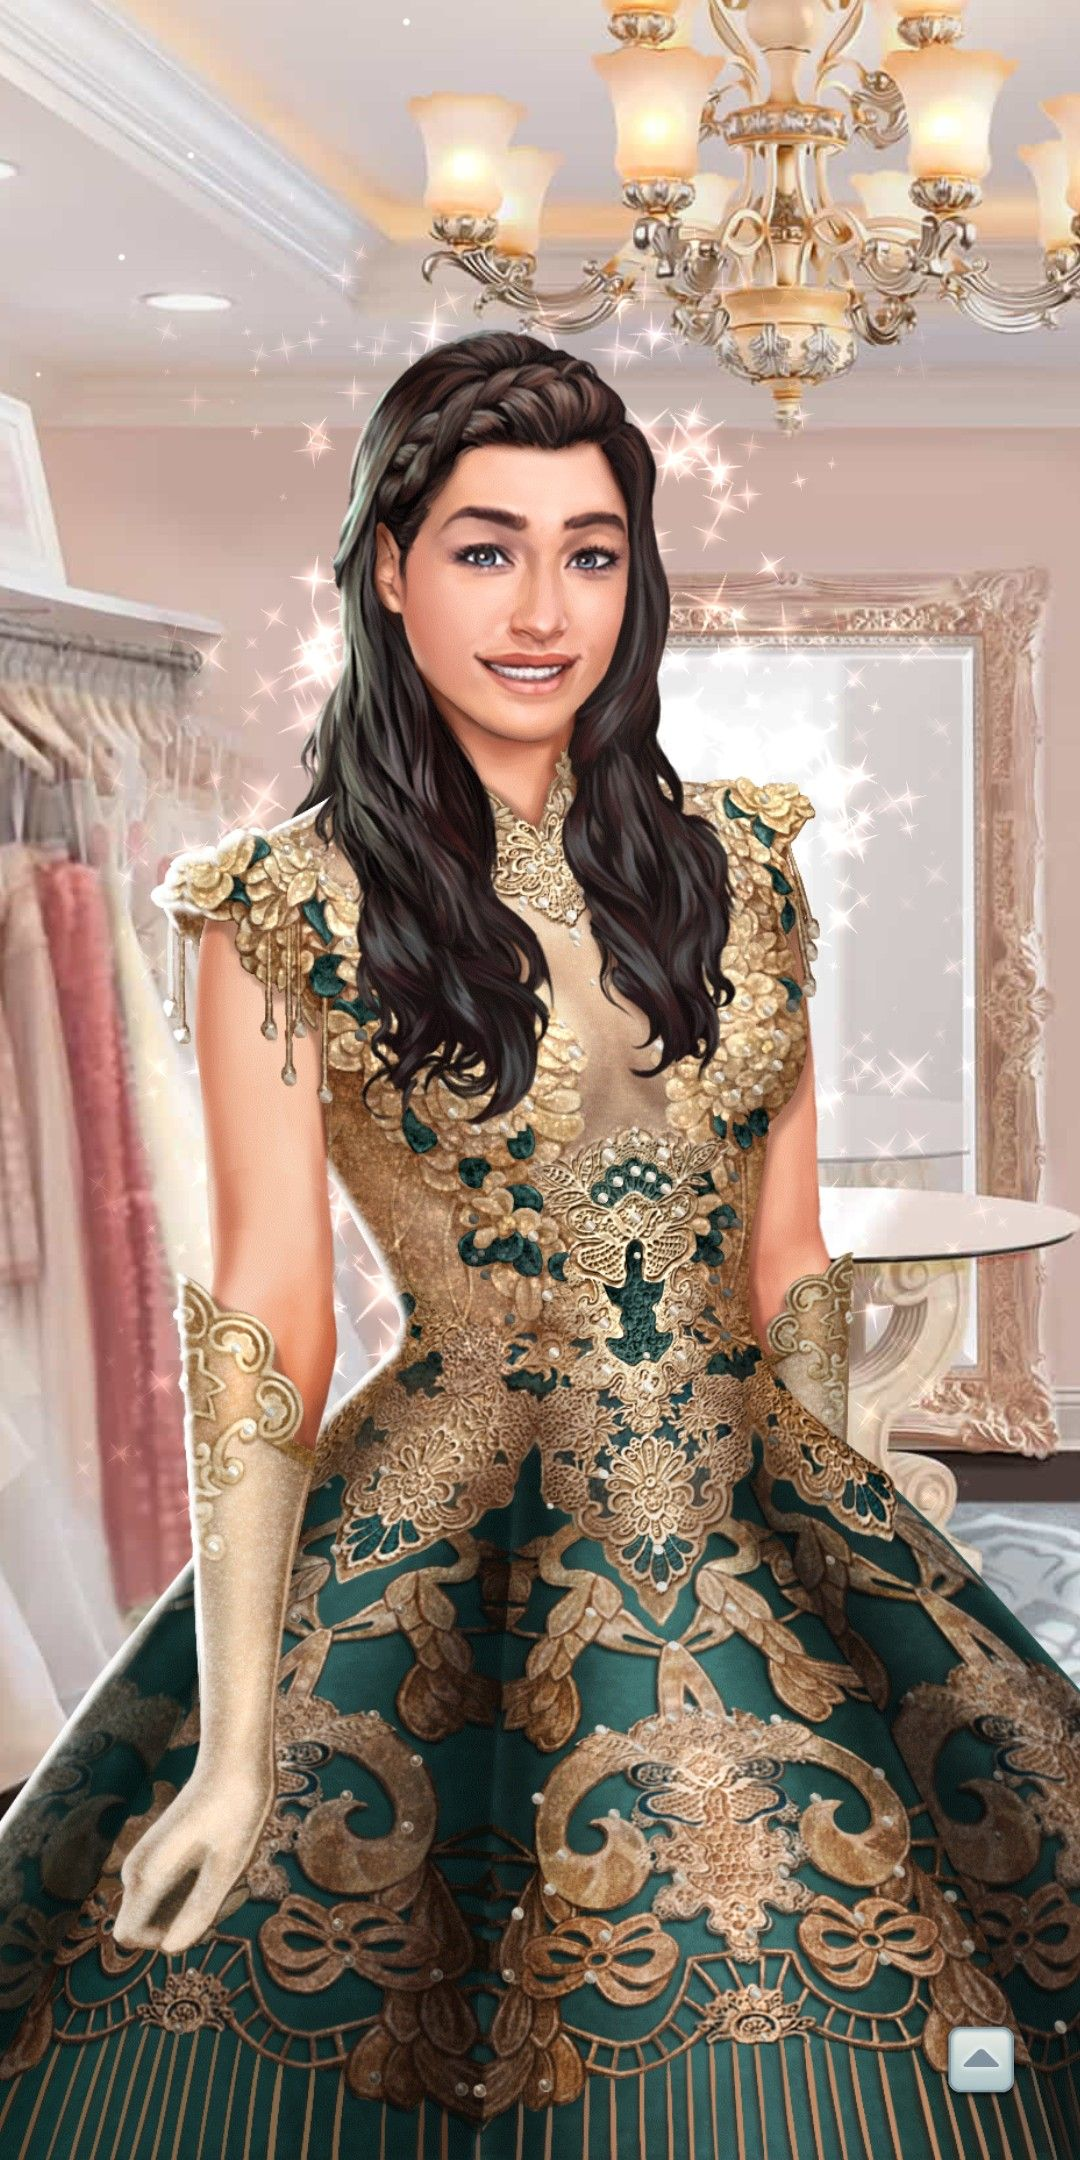 Pin by Lilia97 on The Royal Heir ️ Formal dresses